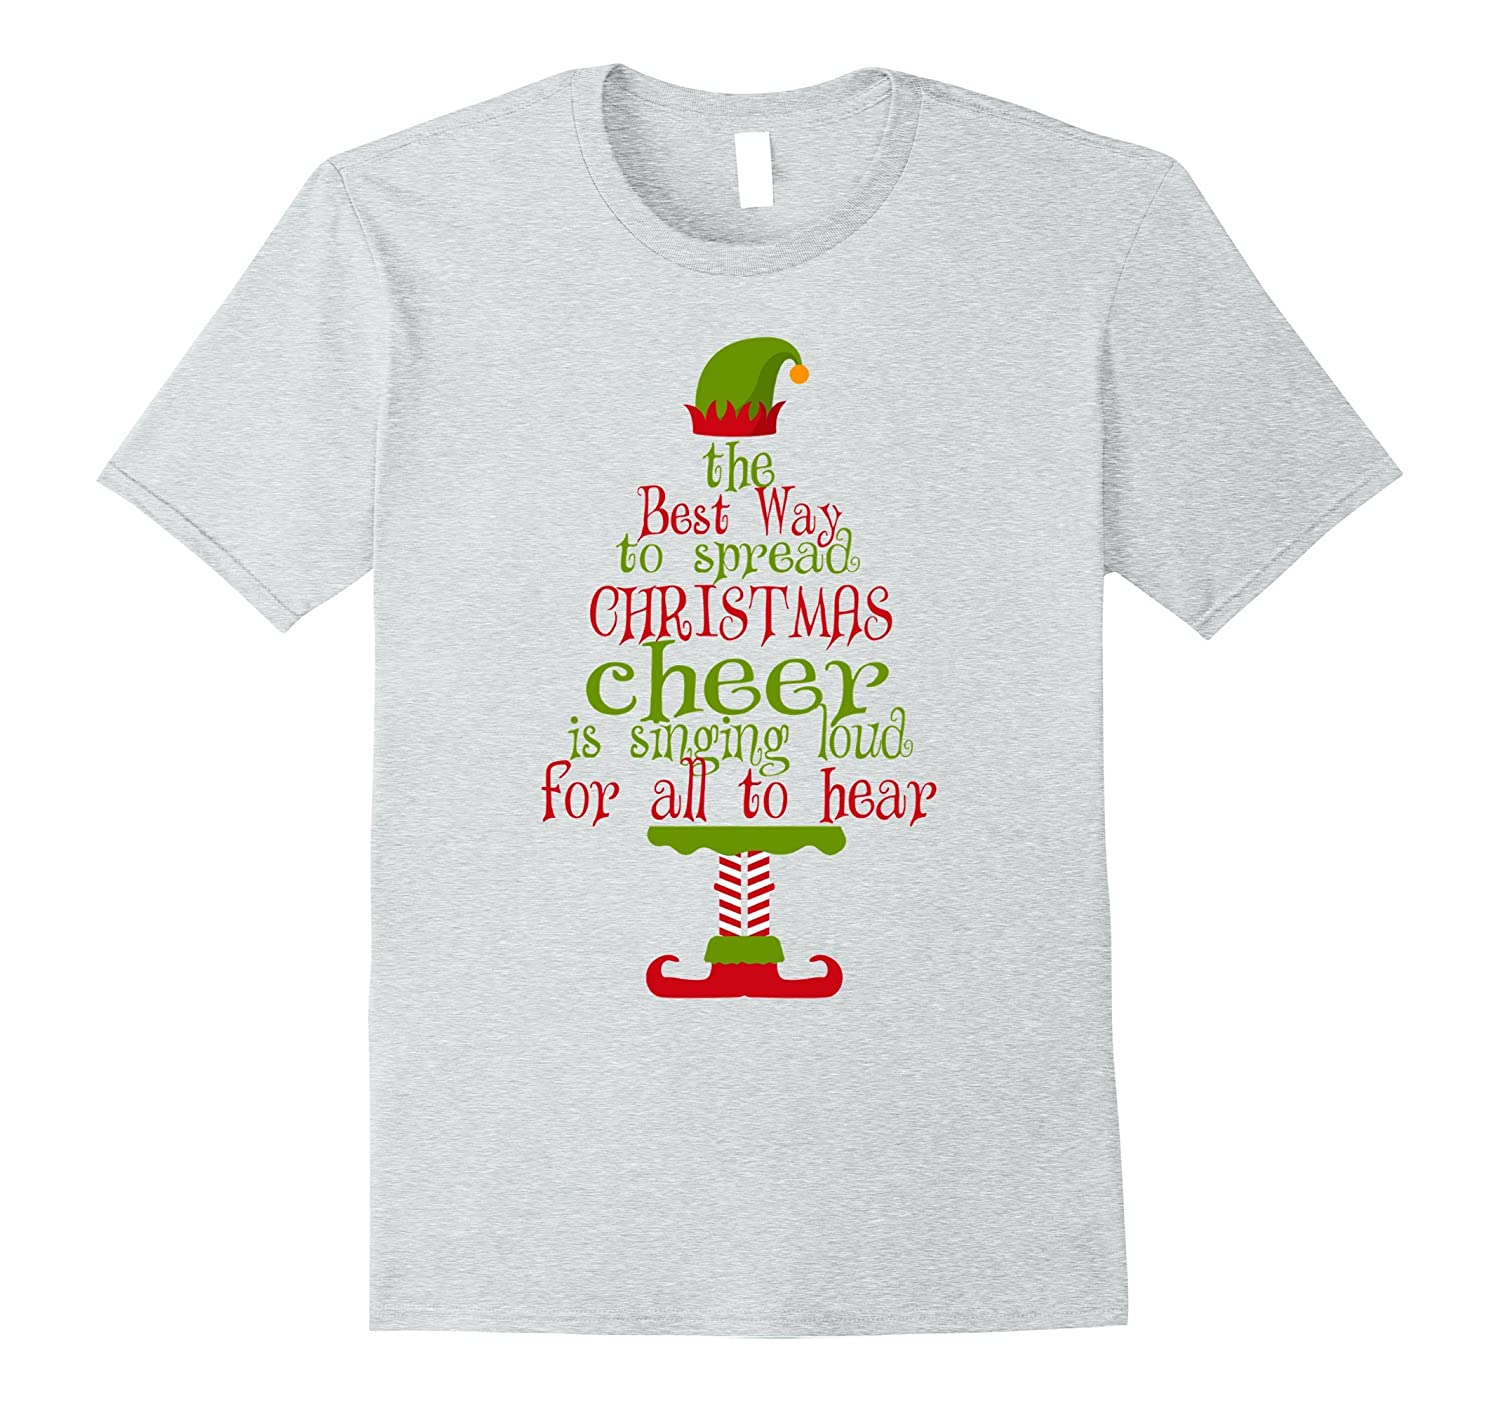 christmas elf t shirt the best way to spread christmas cheer ah my shirt